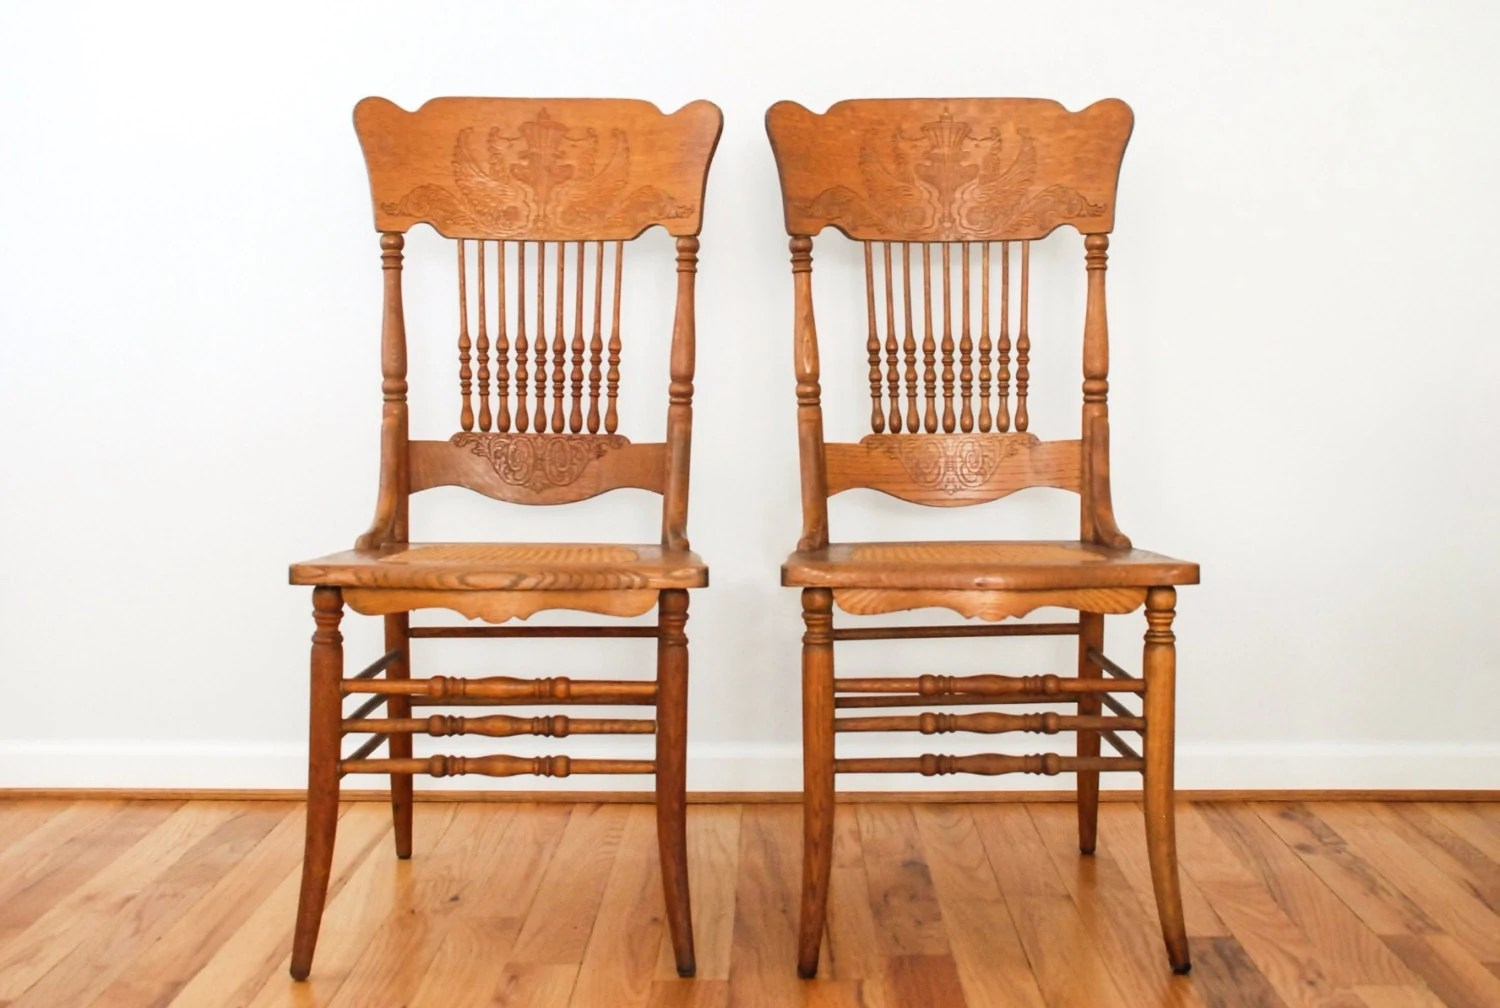 Antique Wooden Chair Antique Wood Chairs Antique Dining Chairs Cane Chairs